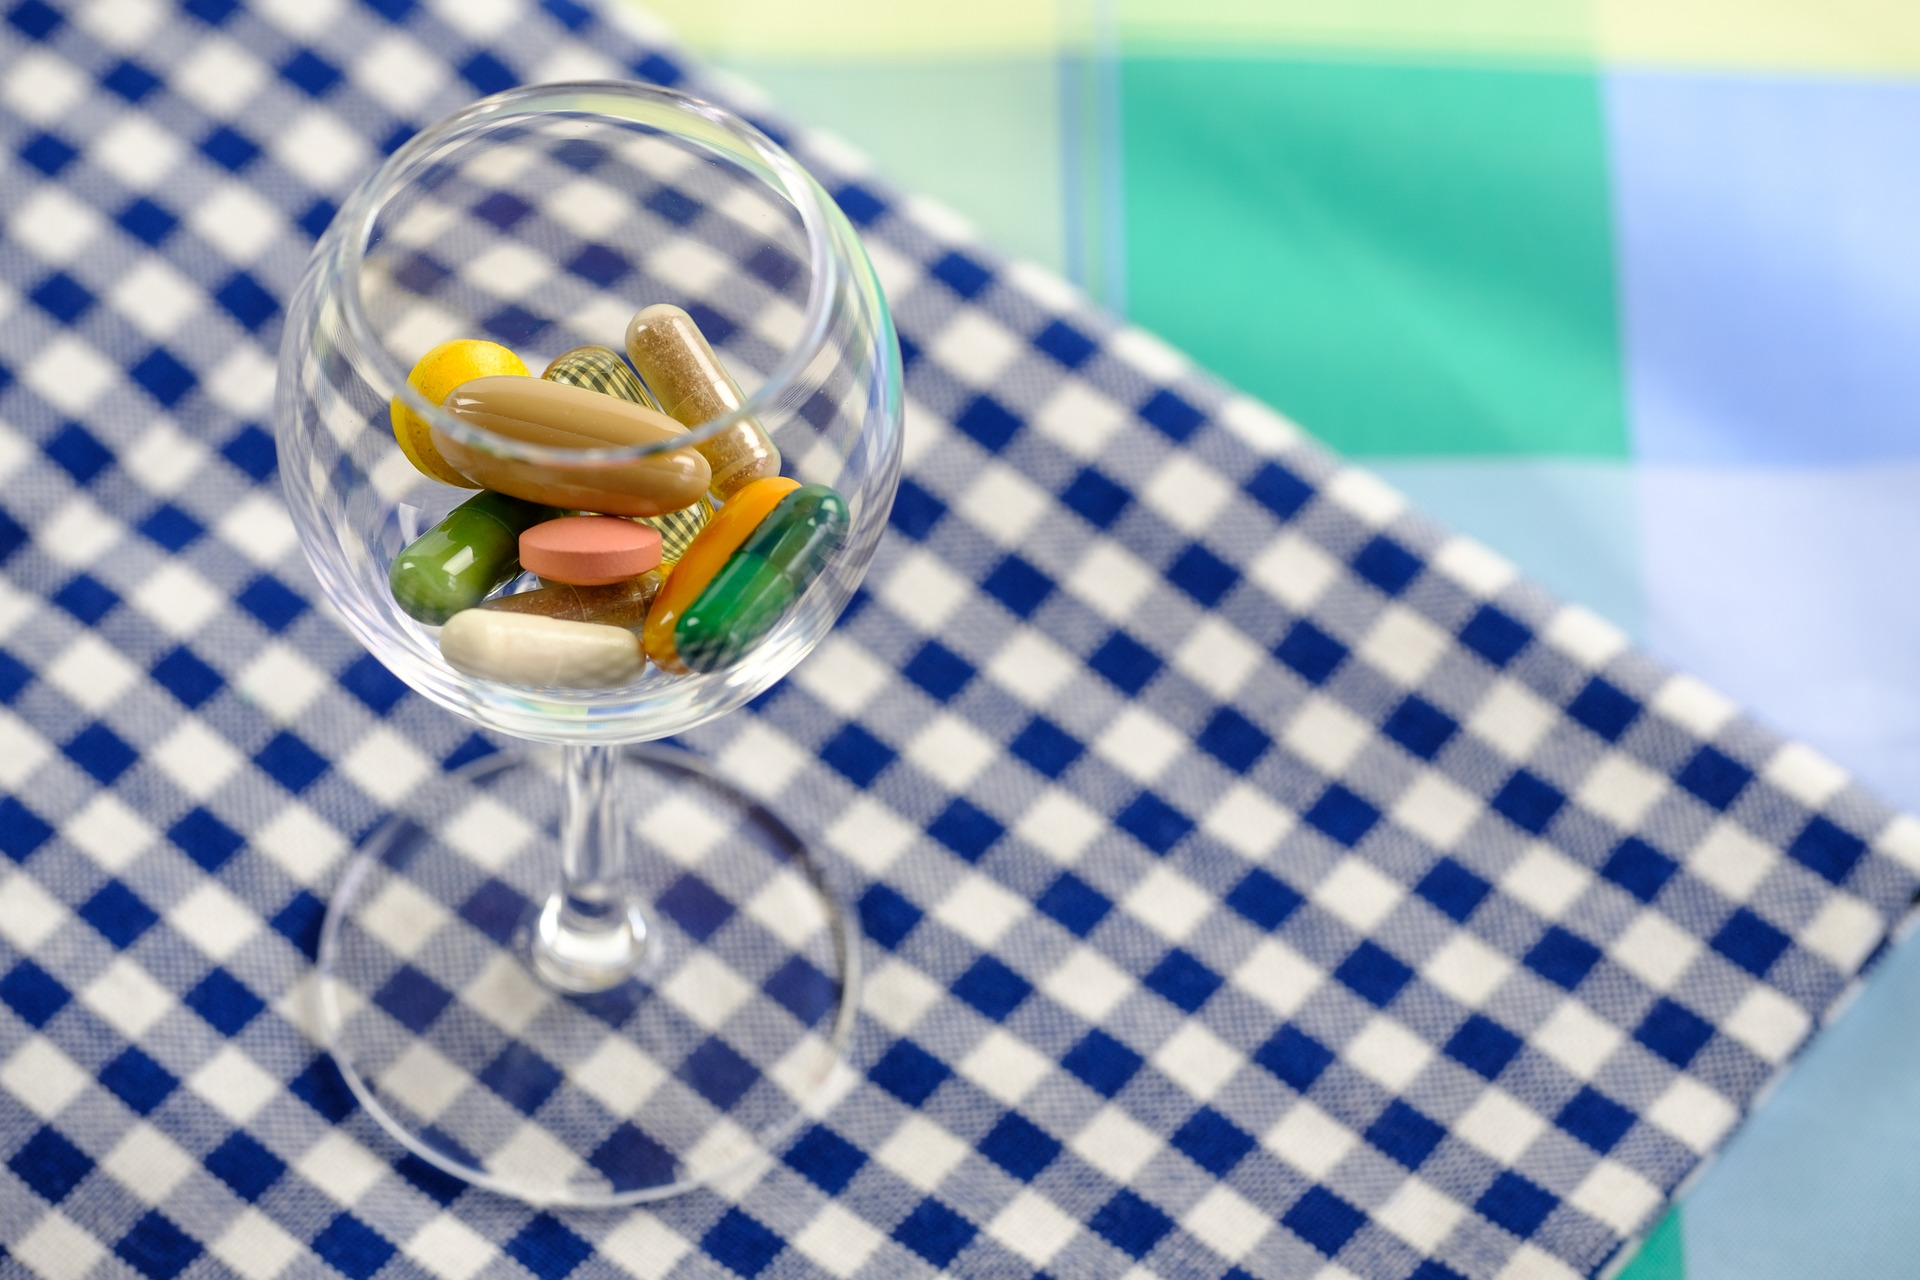 pills-in-a-glass